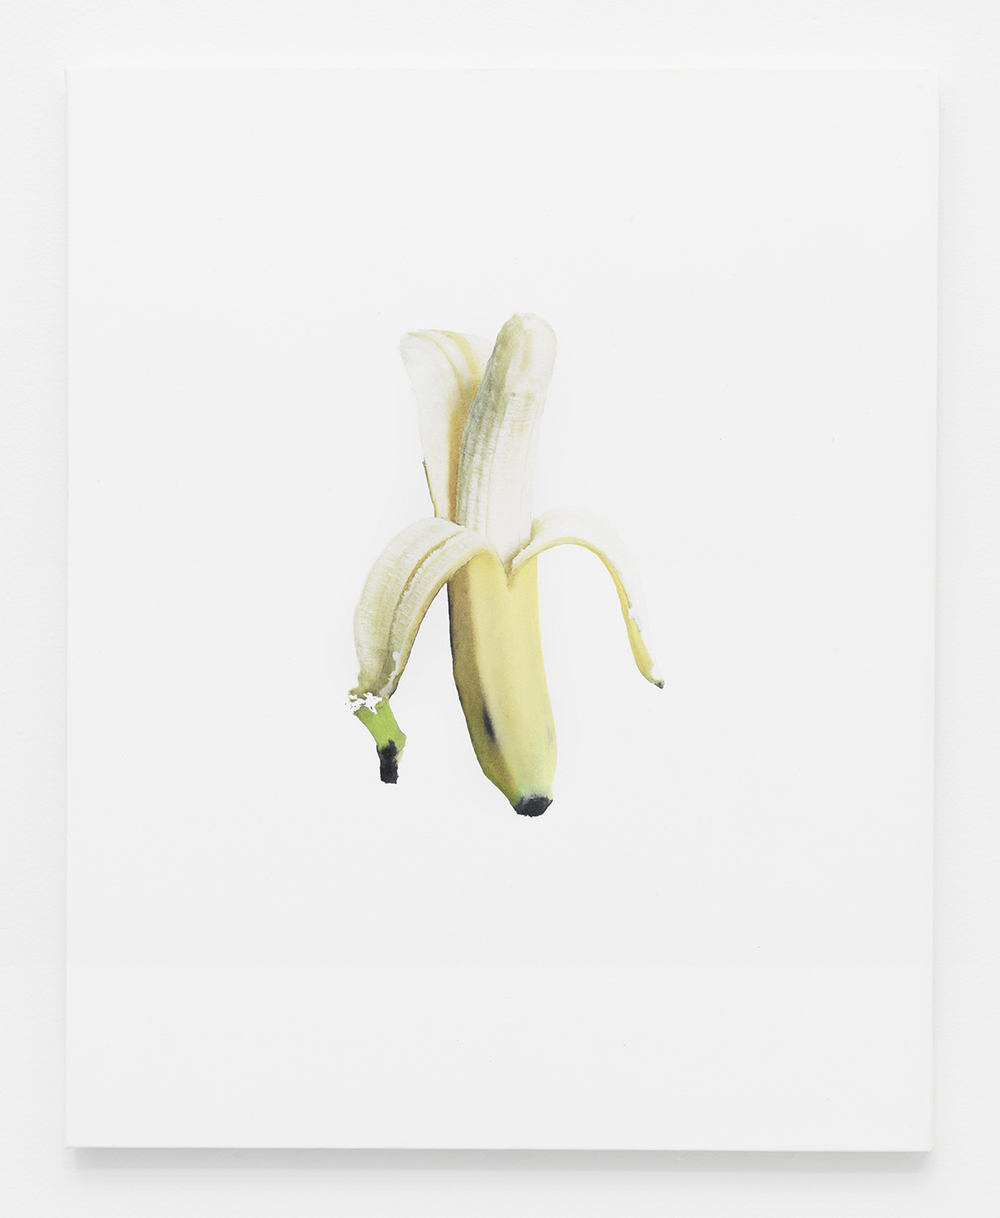 Banana Jpeg 3 2014  Oil and Epson Ultrachrome inkjet on Epson synthetic material  20 x 16 inches